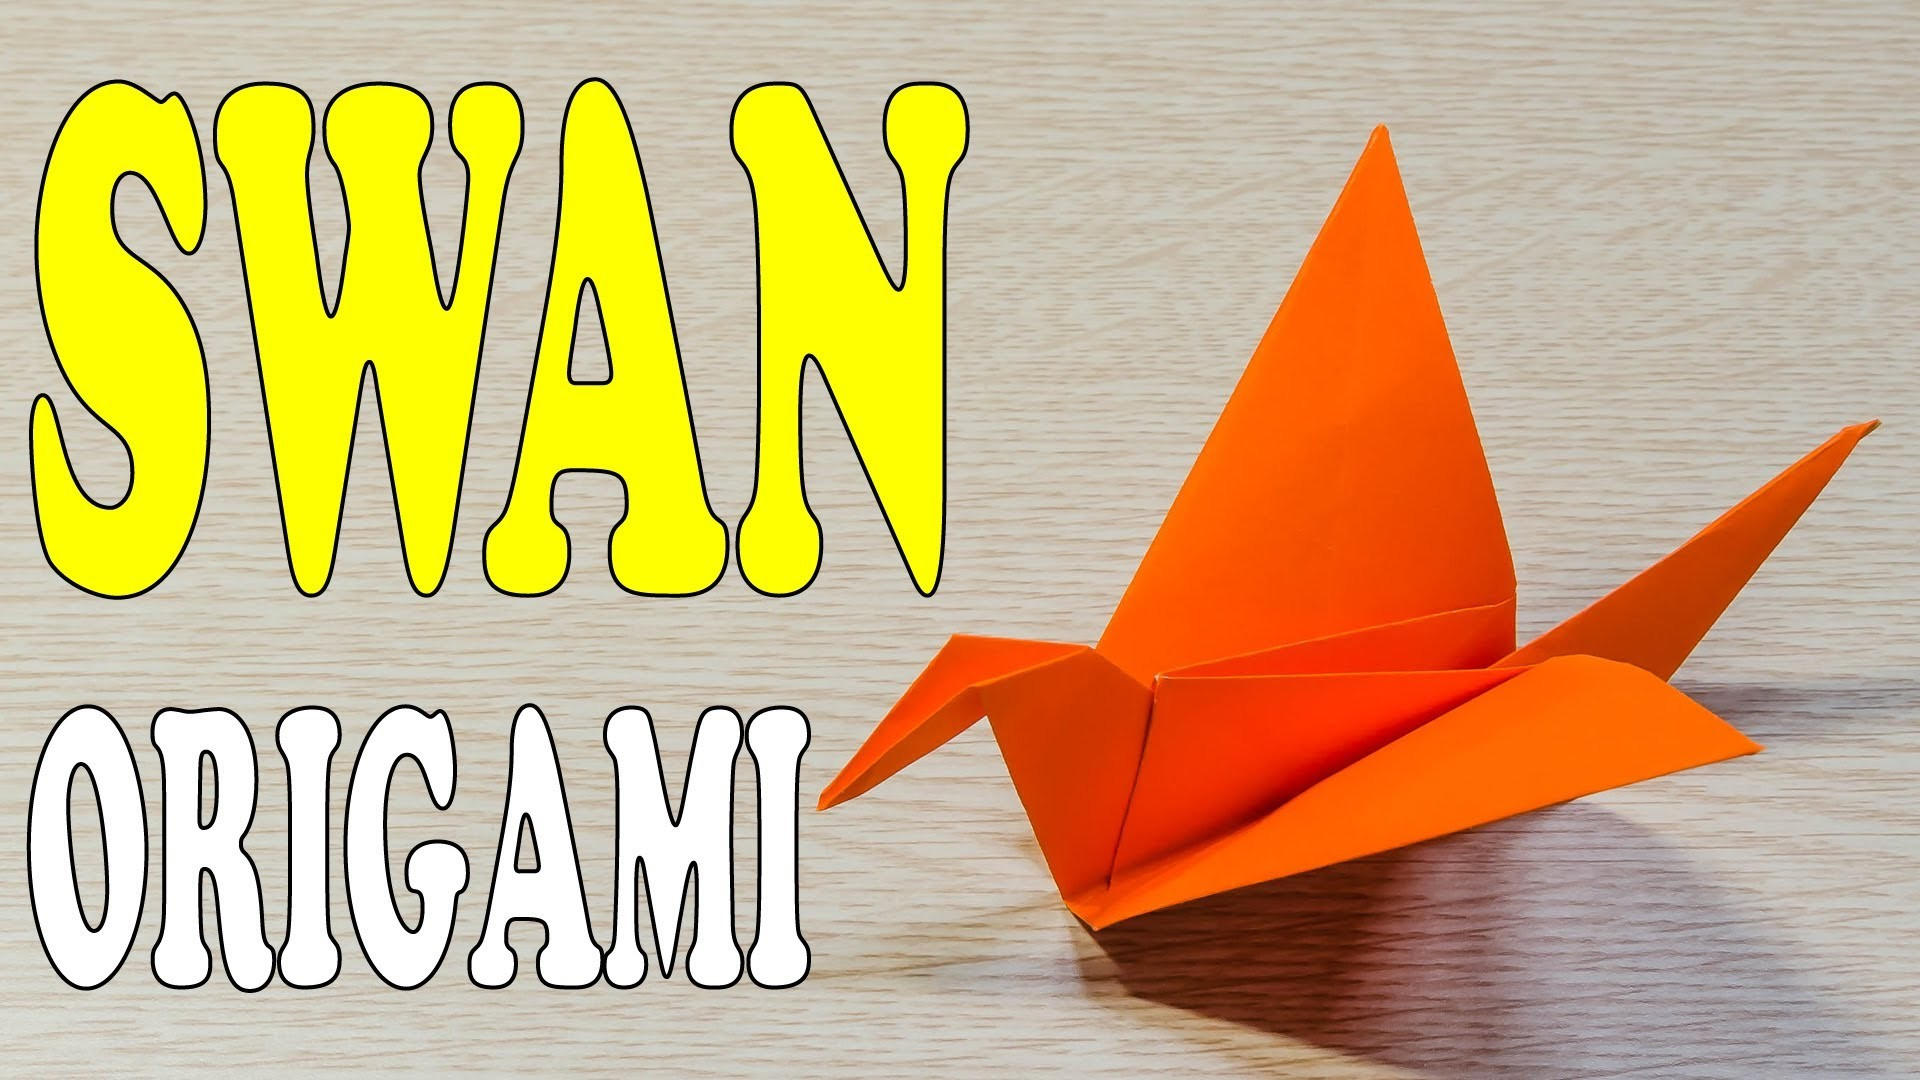 How to Make a paper Swan Origami - Flapping Wings